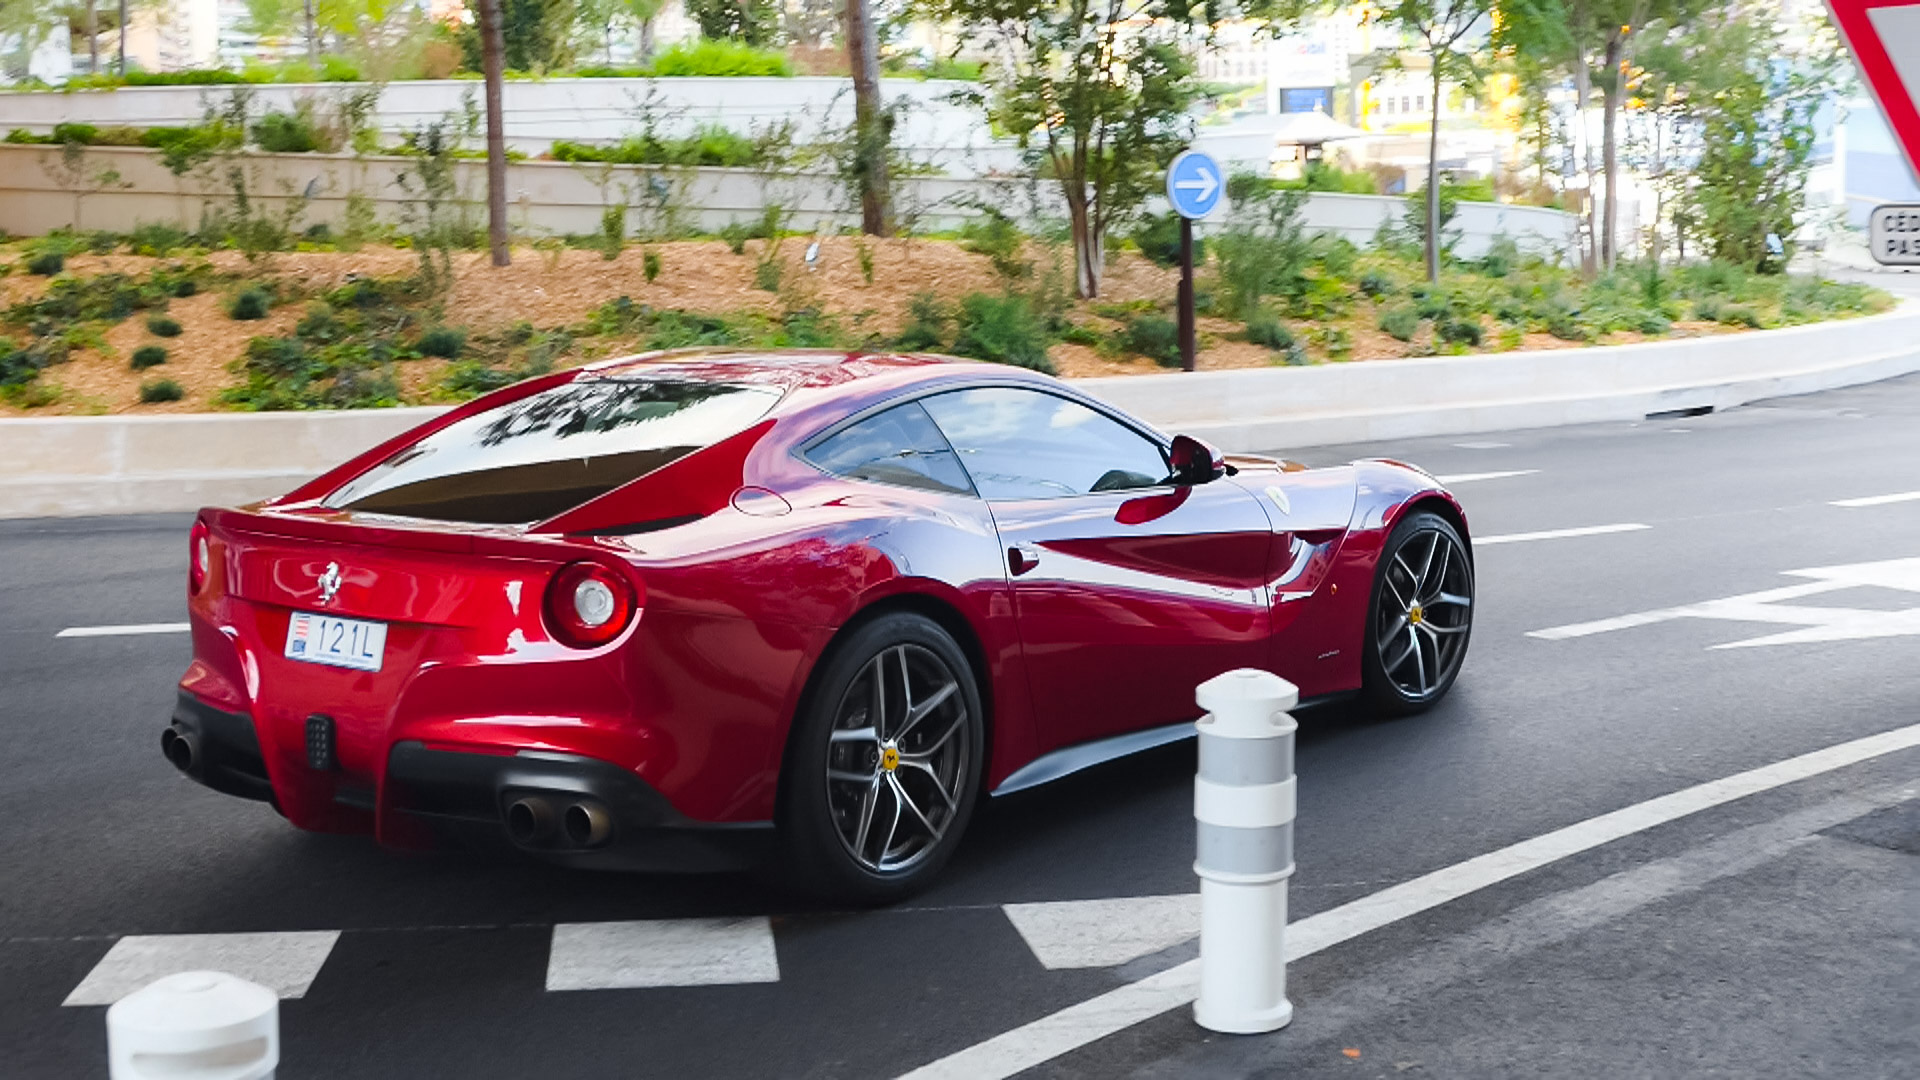 Ferrari F12 Berlinetta - 121L (MC)